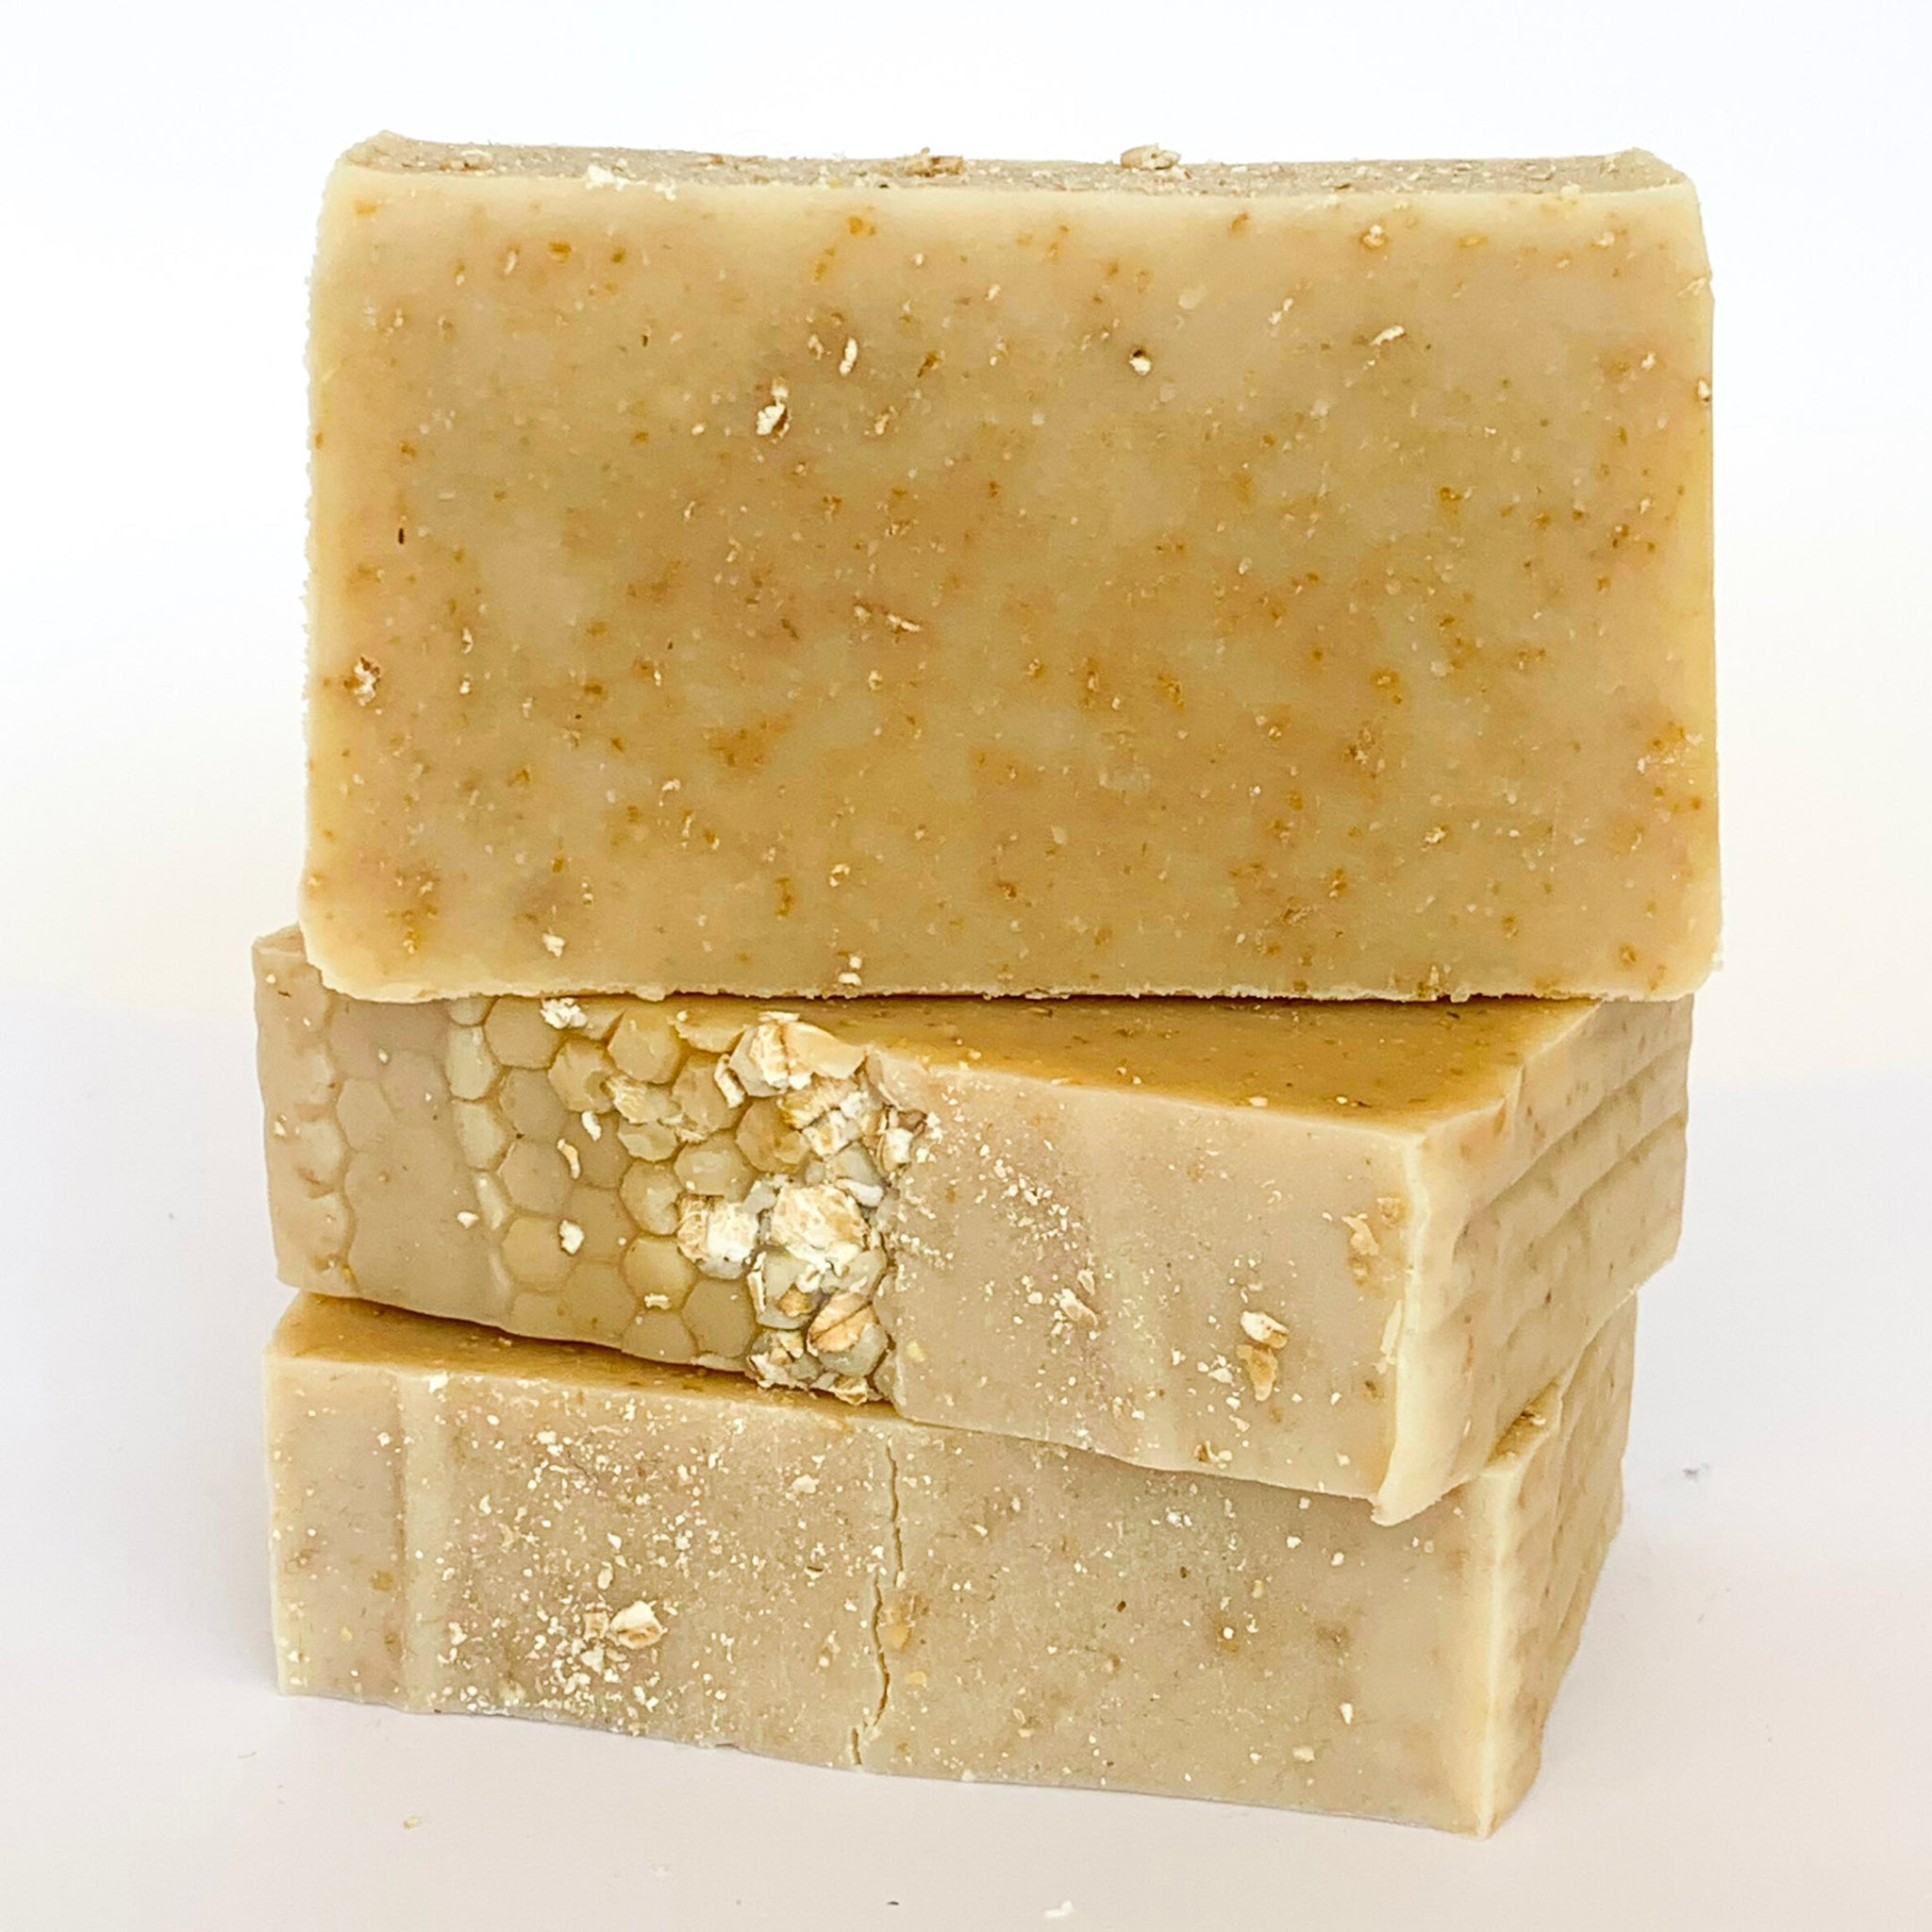 Oatmeal Olive Oil Soap with Beeswax